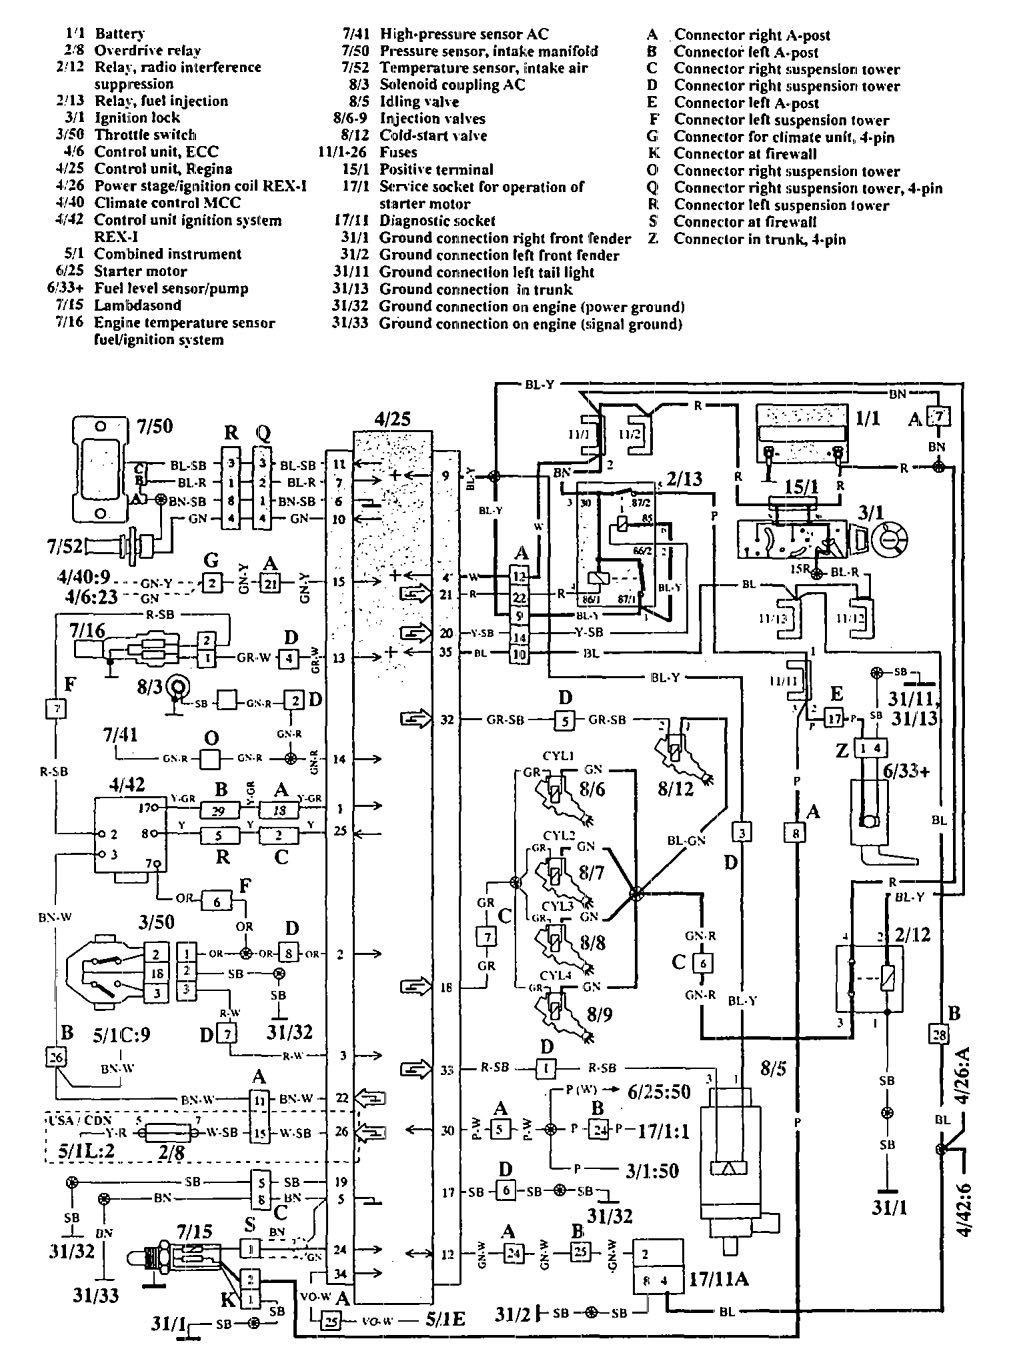 Volvo wiring diagram  images